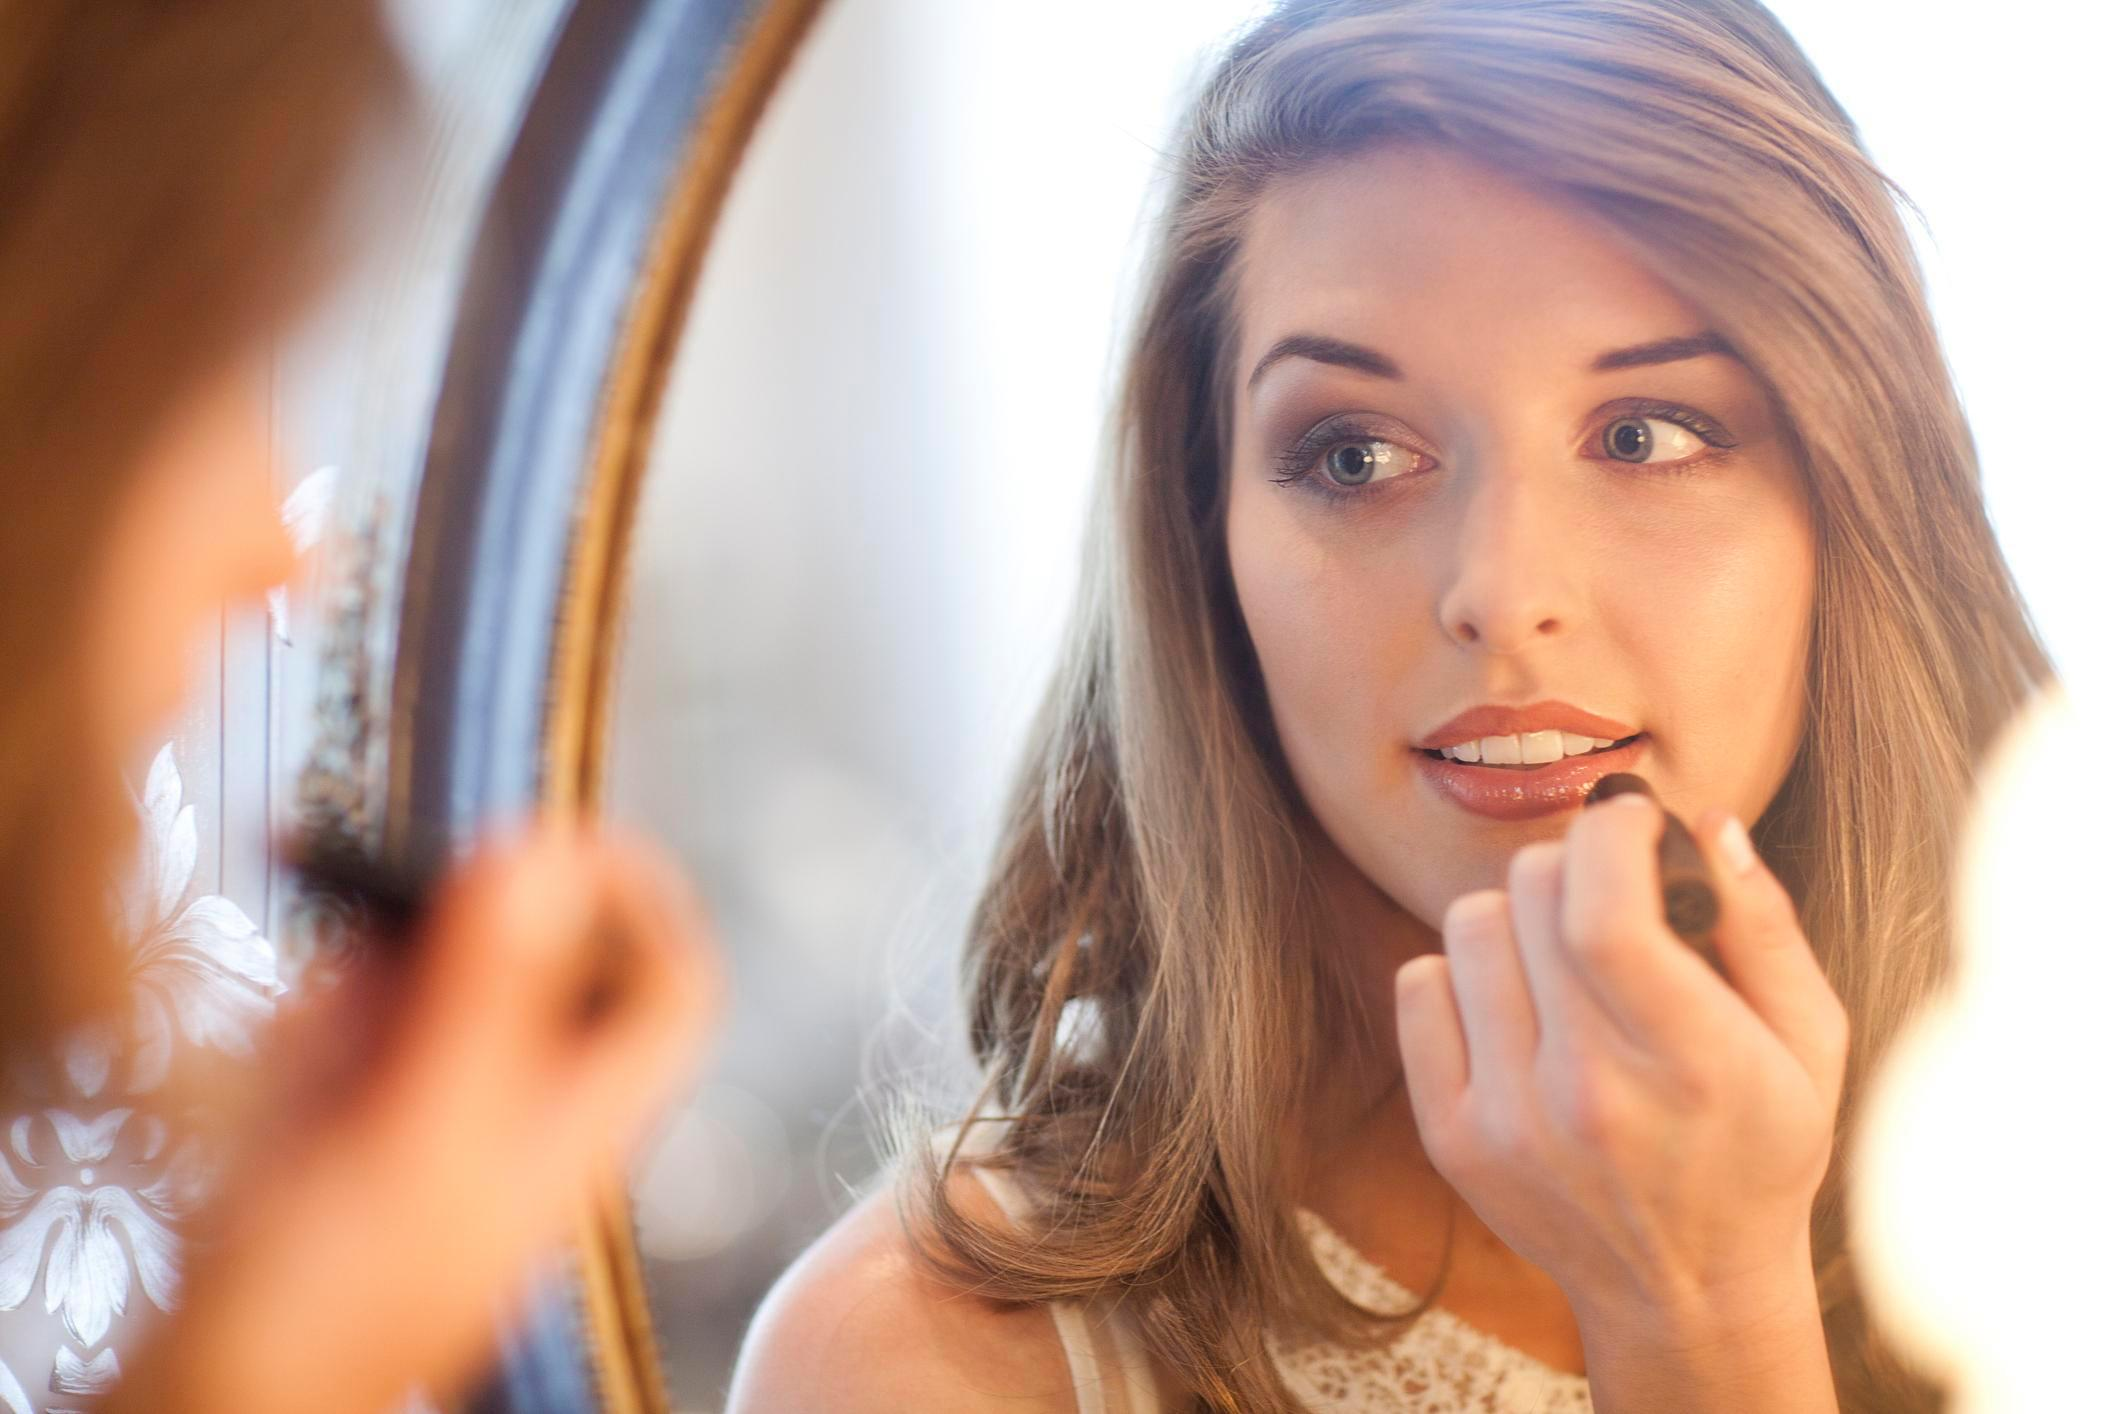 Had a cold lately? Here's the one make-up product health experts say you should get rid of